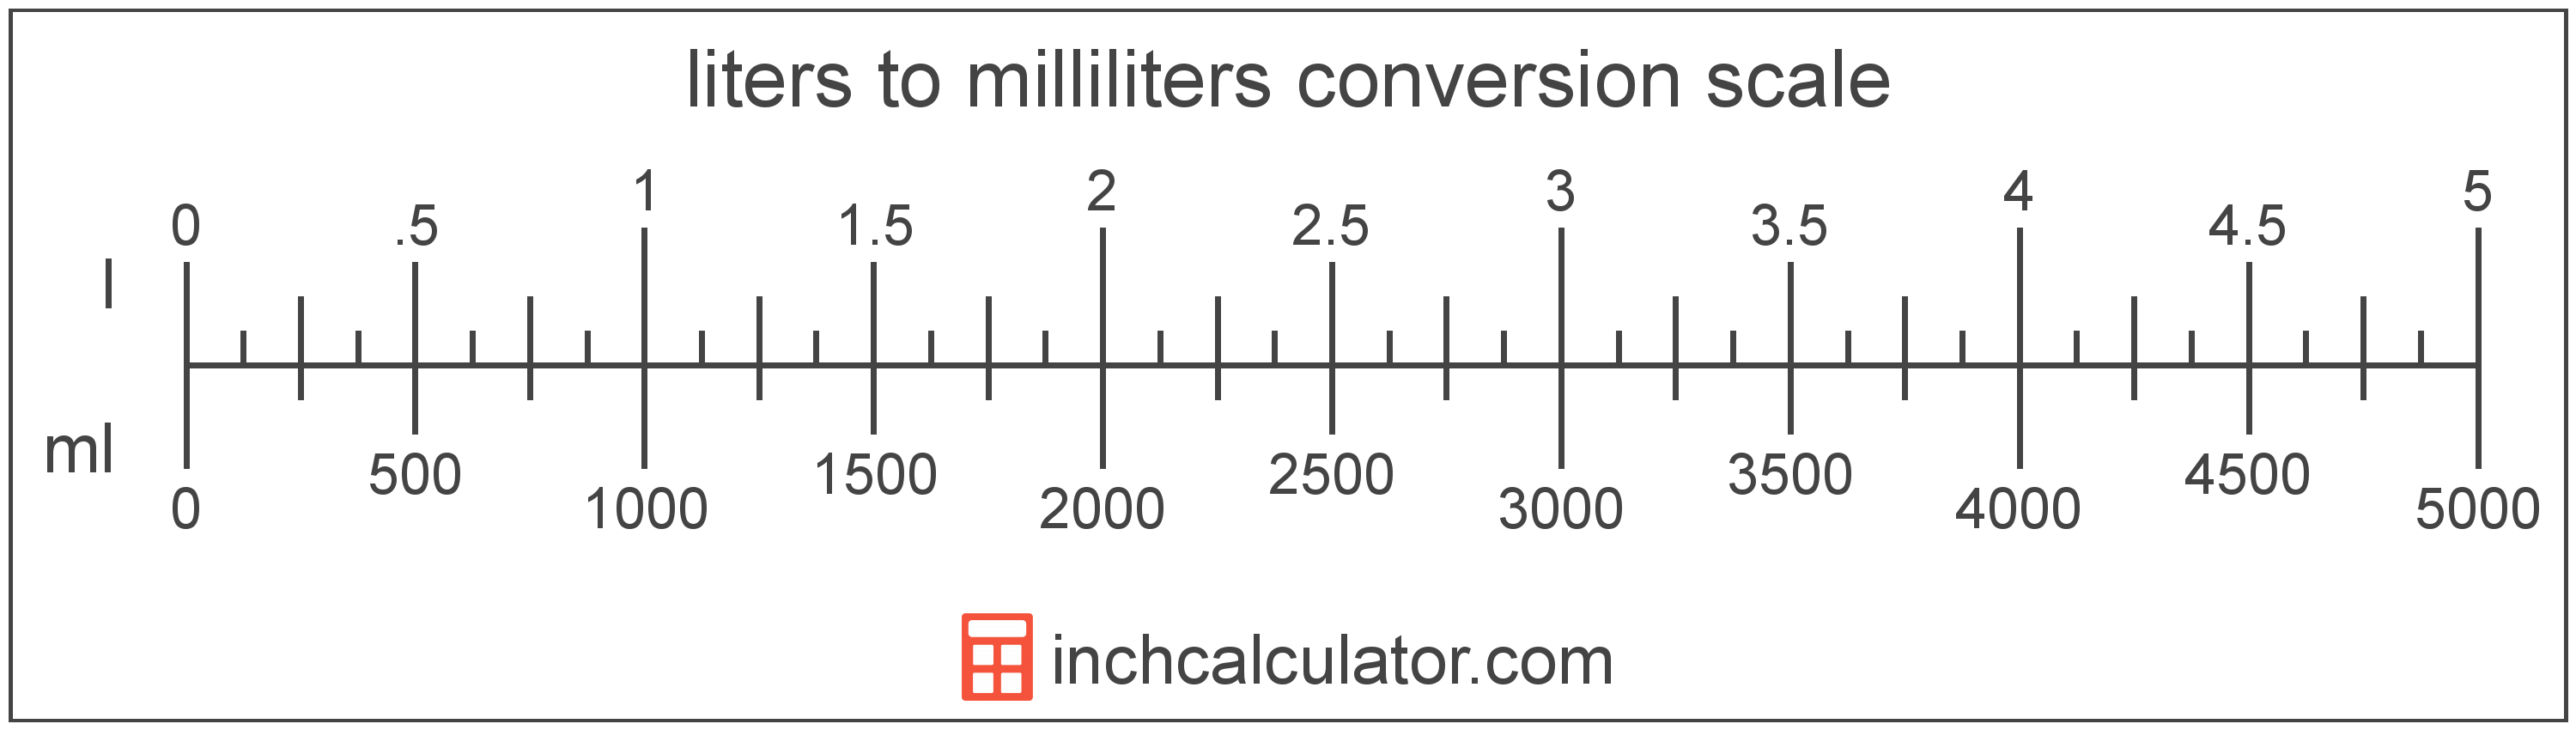 Convert Milliliters to Liters - (ml to l) - Inch Calculator